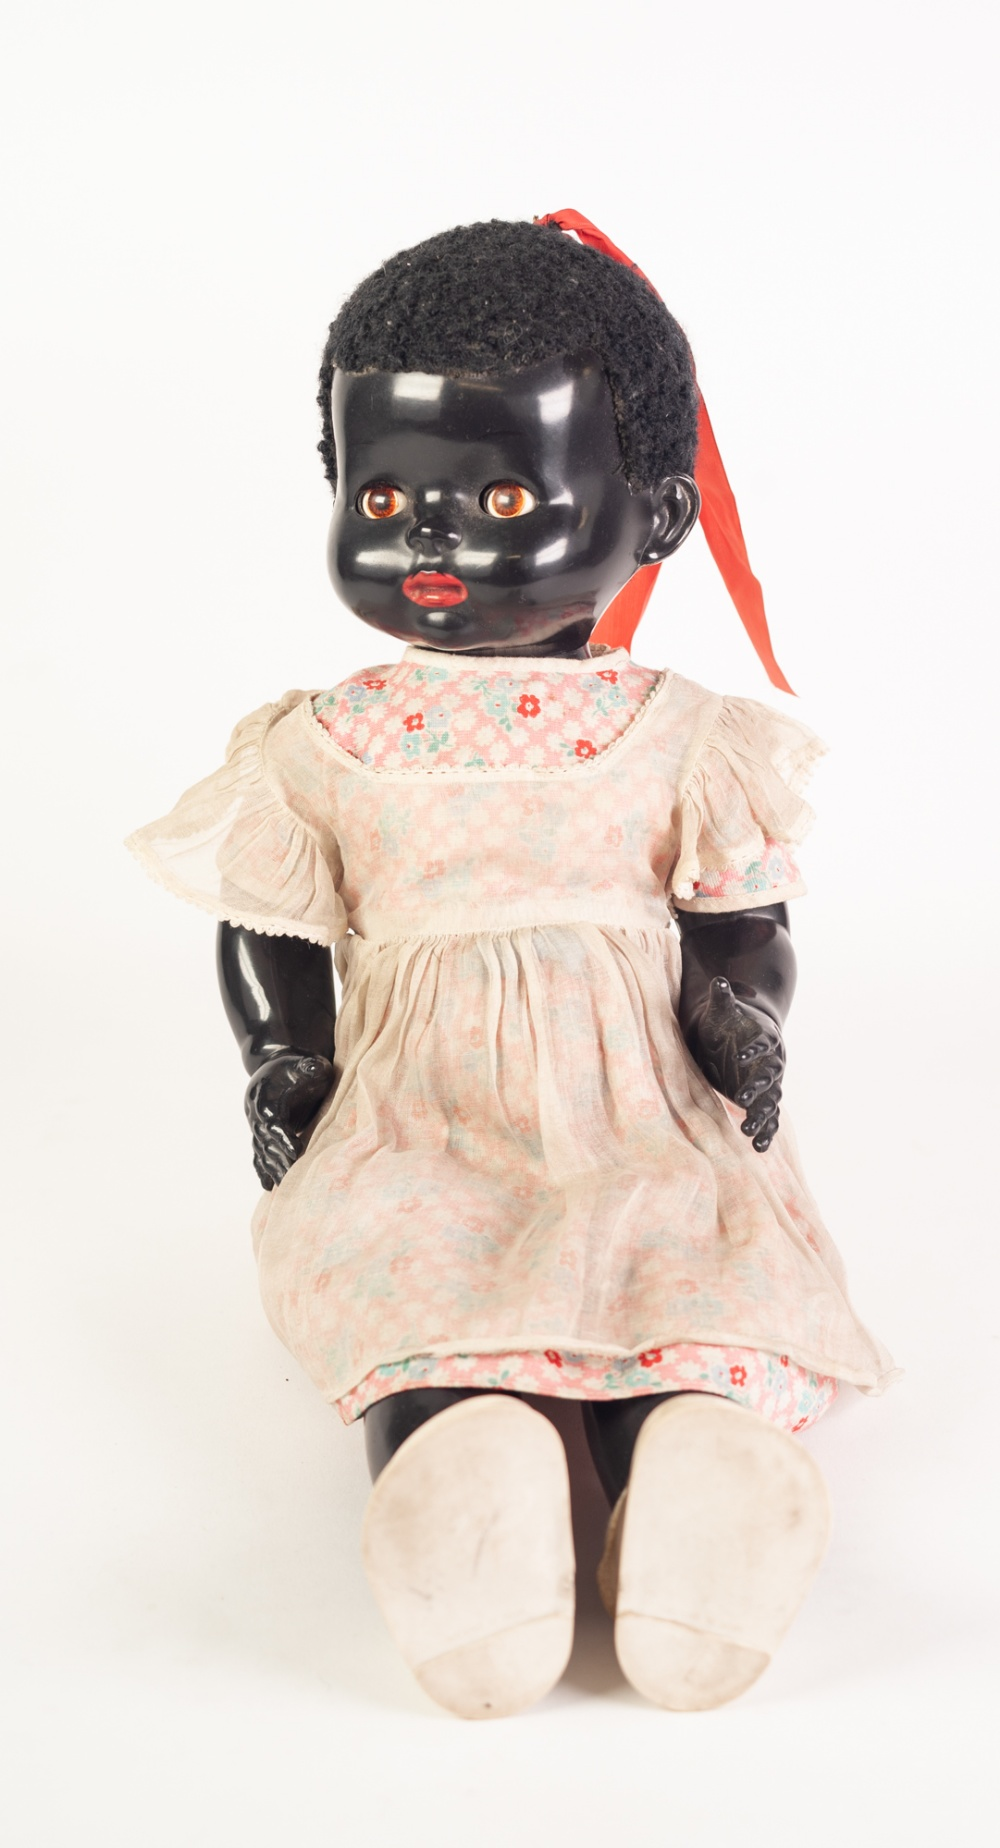 Lot 312 - a 'PEDIGREE' HARD PLASTIC BLACK BABY WALKING DOLL, with fabric wig, brown glass fixed eyes,